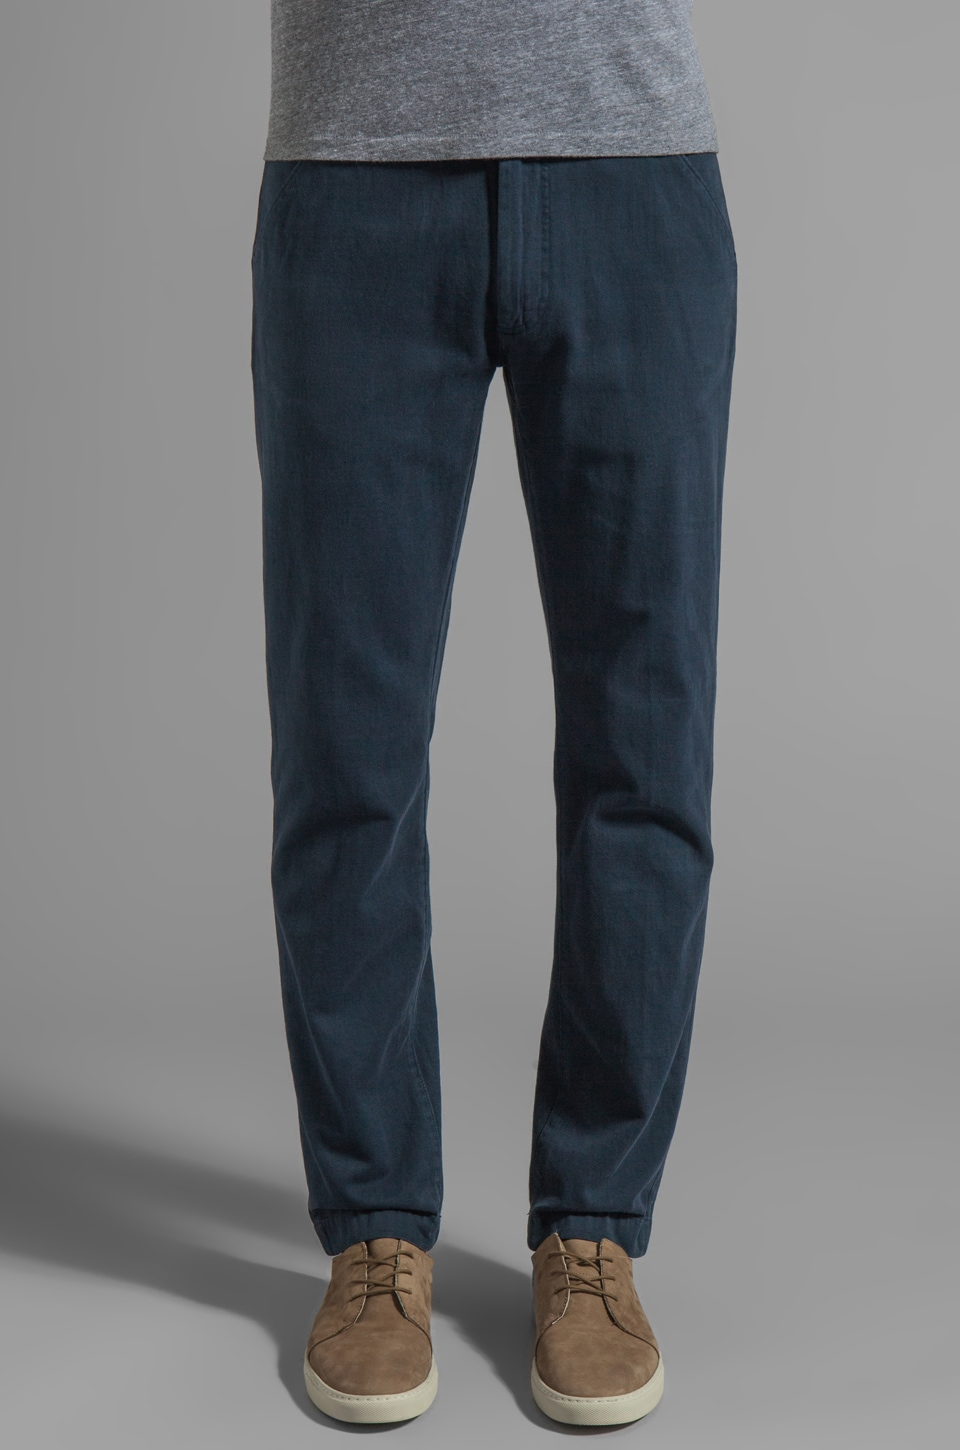 LEVI'S: Made & Crafted Spoke Chino in Black Iris